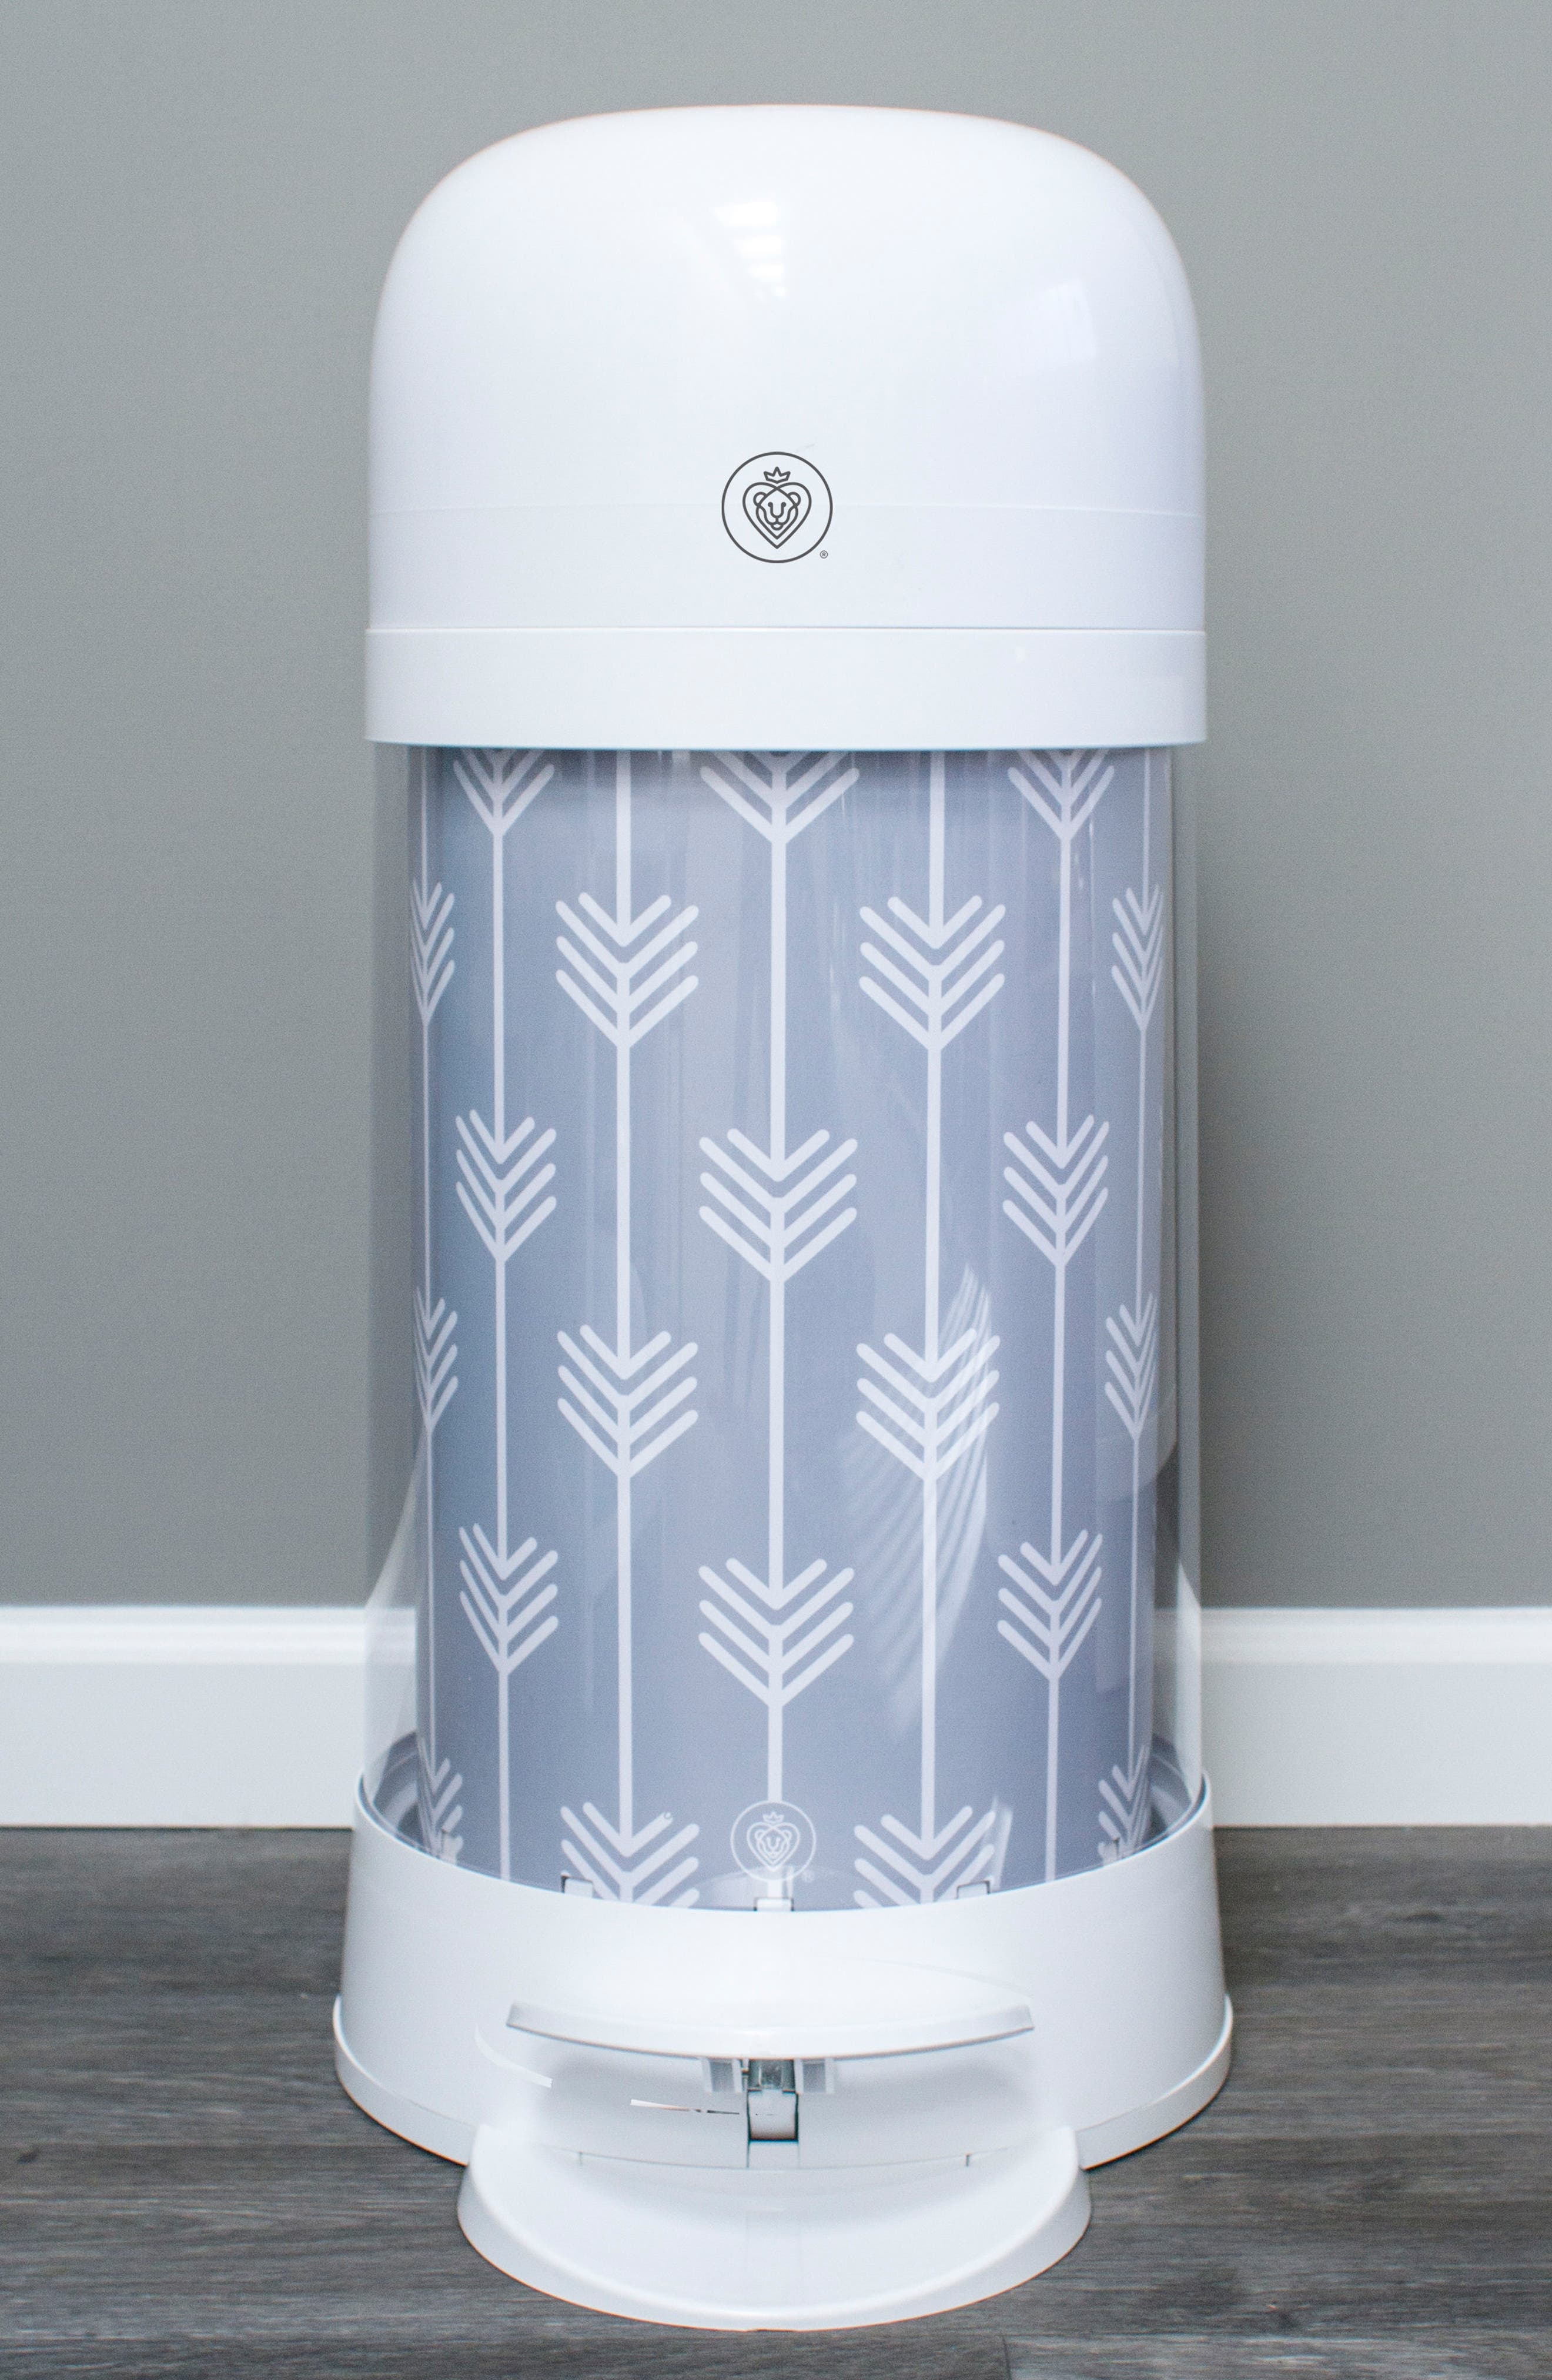 Twist'r Diaper Disposal System,                             Alternate thumbnail 2, color,                             GREY ARROW